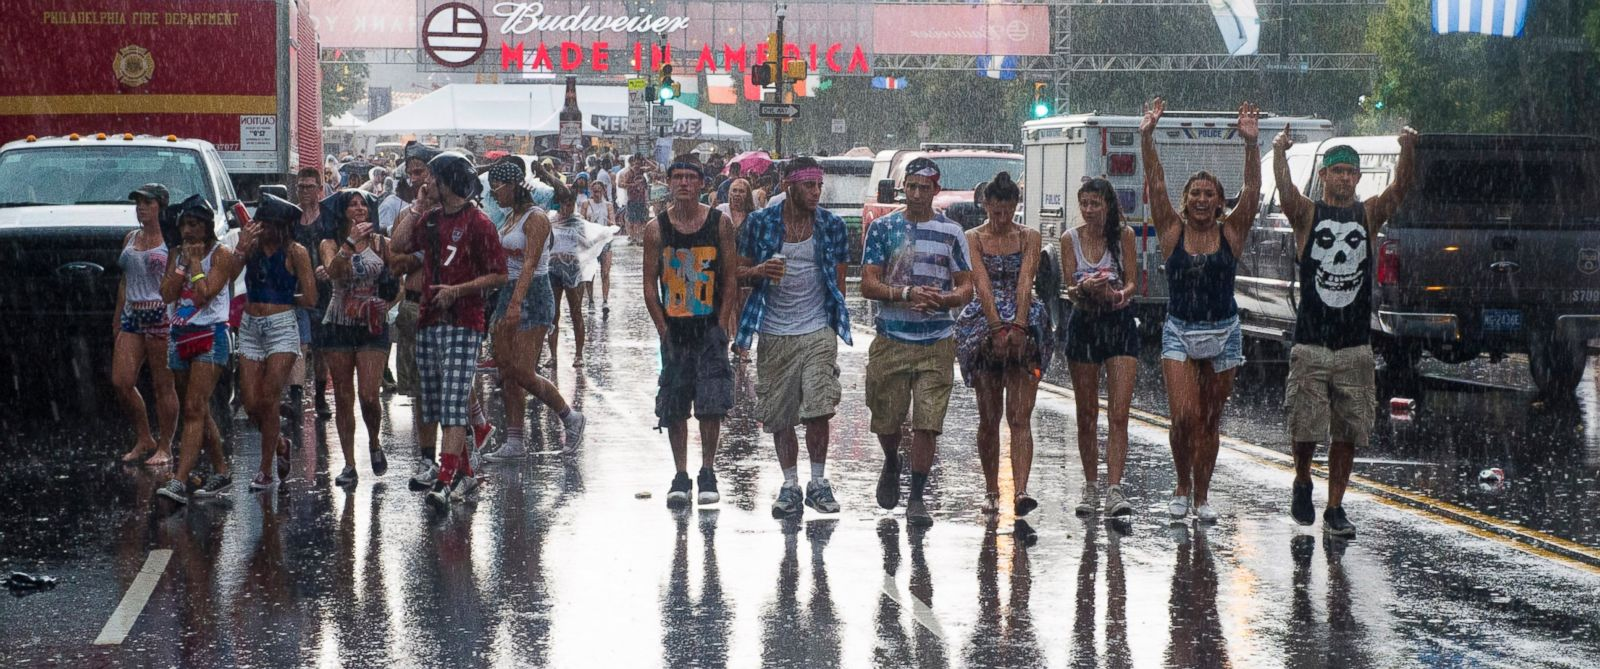 Concert goers leave the Made in America Festival after the grounds are evacuated due to thunderstorms on Sunday, Aug. 31, 2014, in Philadelphia.